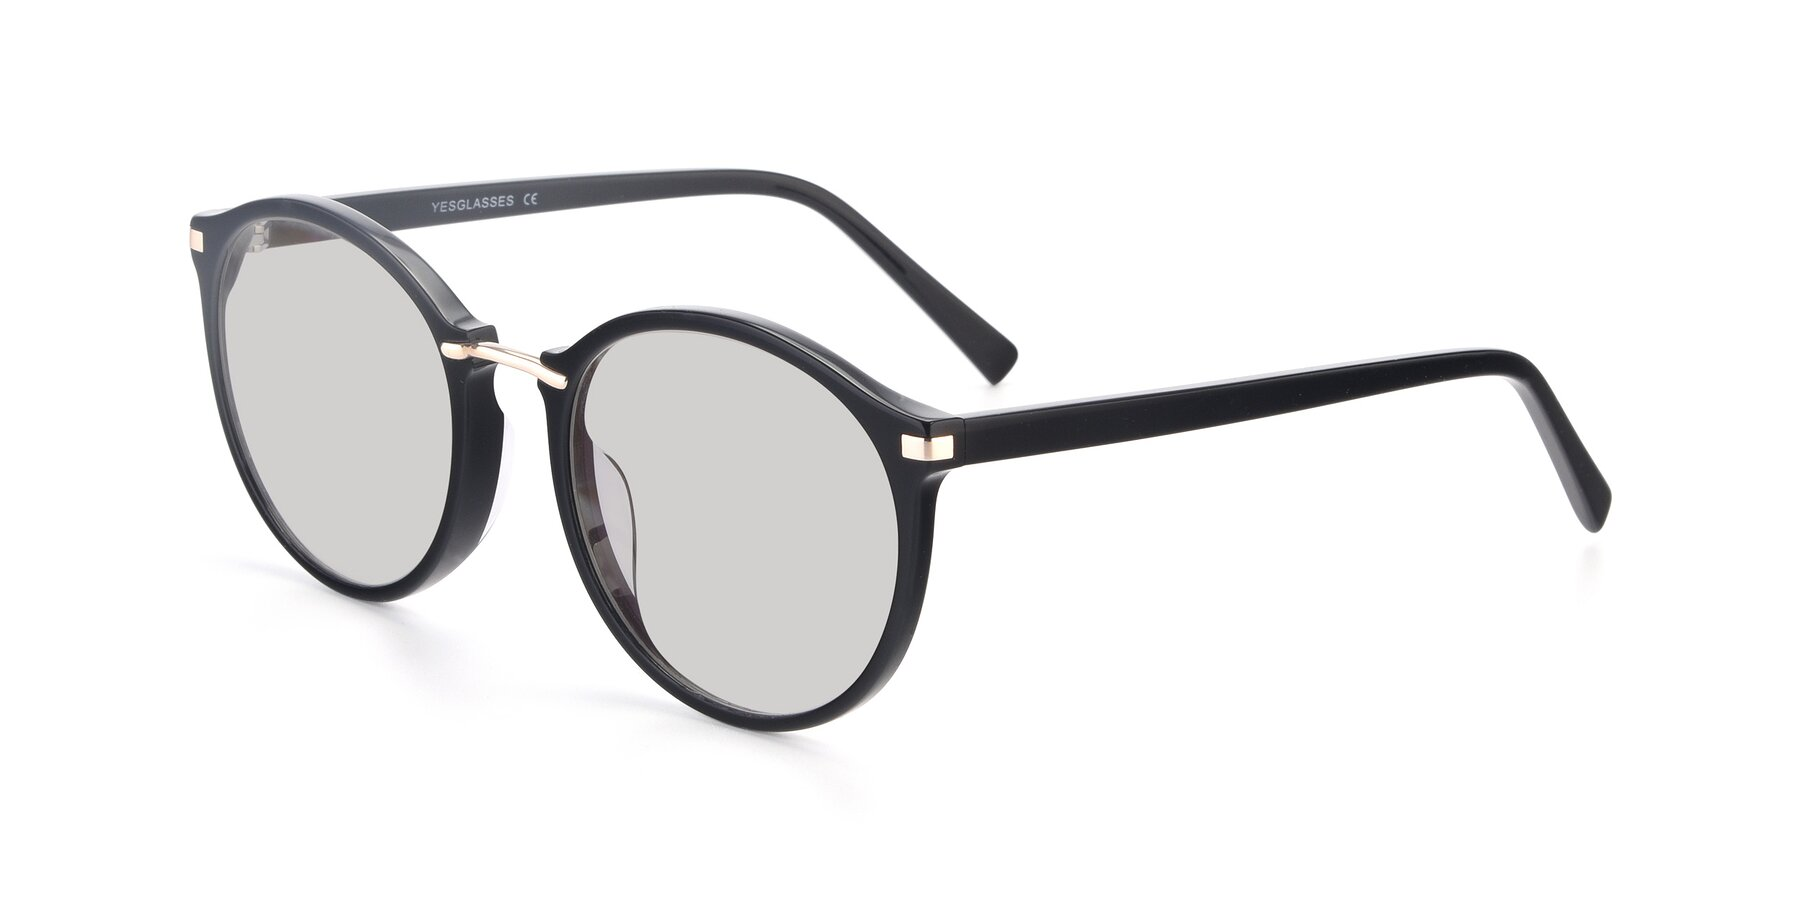 Angle of 17582 in Black with Light Gray Tinted Lenses